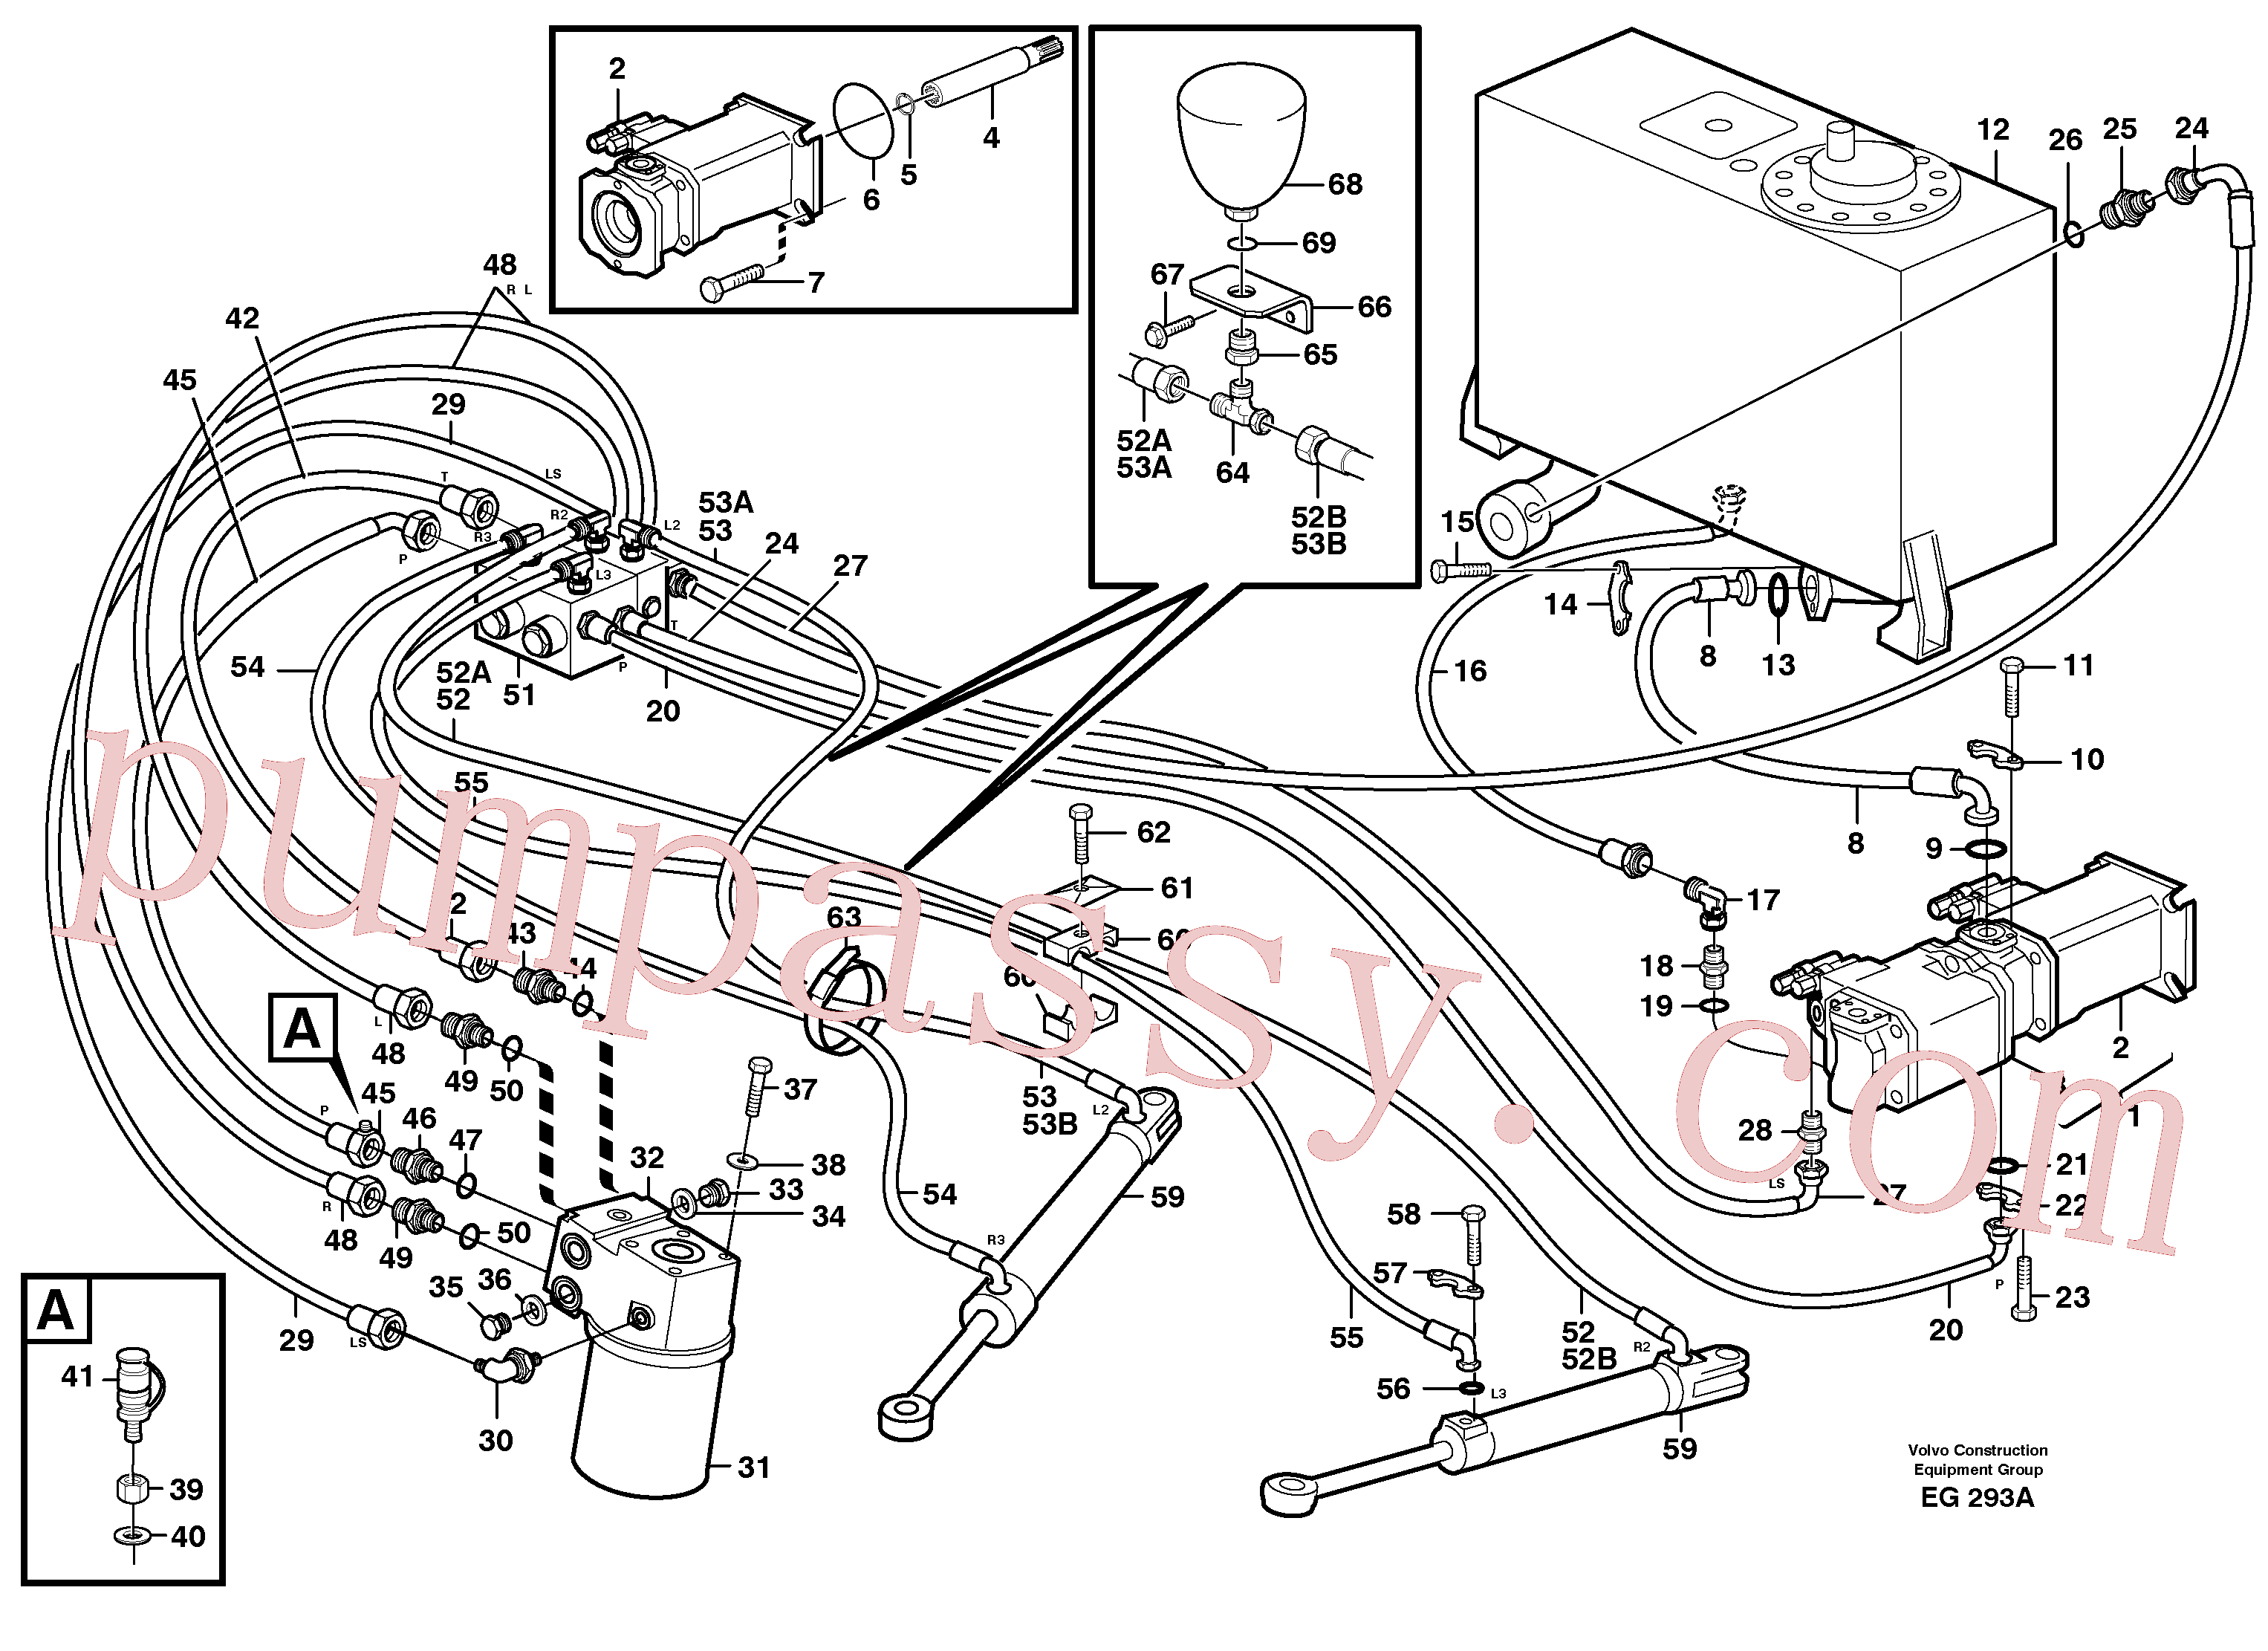 SA9511-42904 for Volvo Steering system(EG293A assembly)